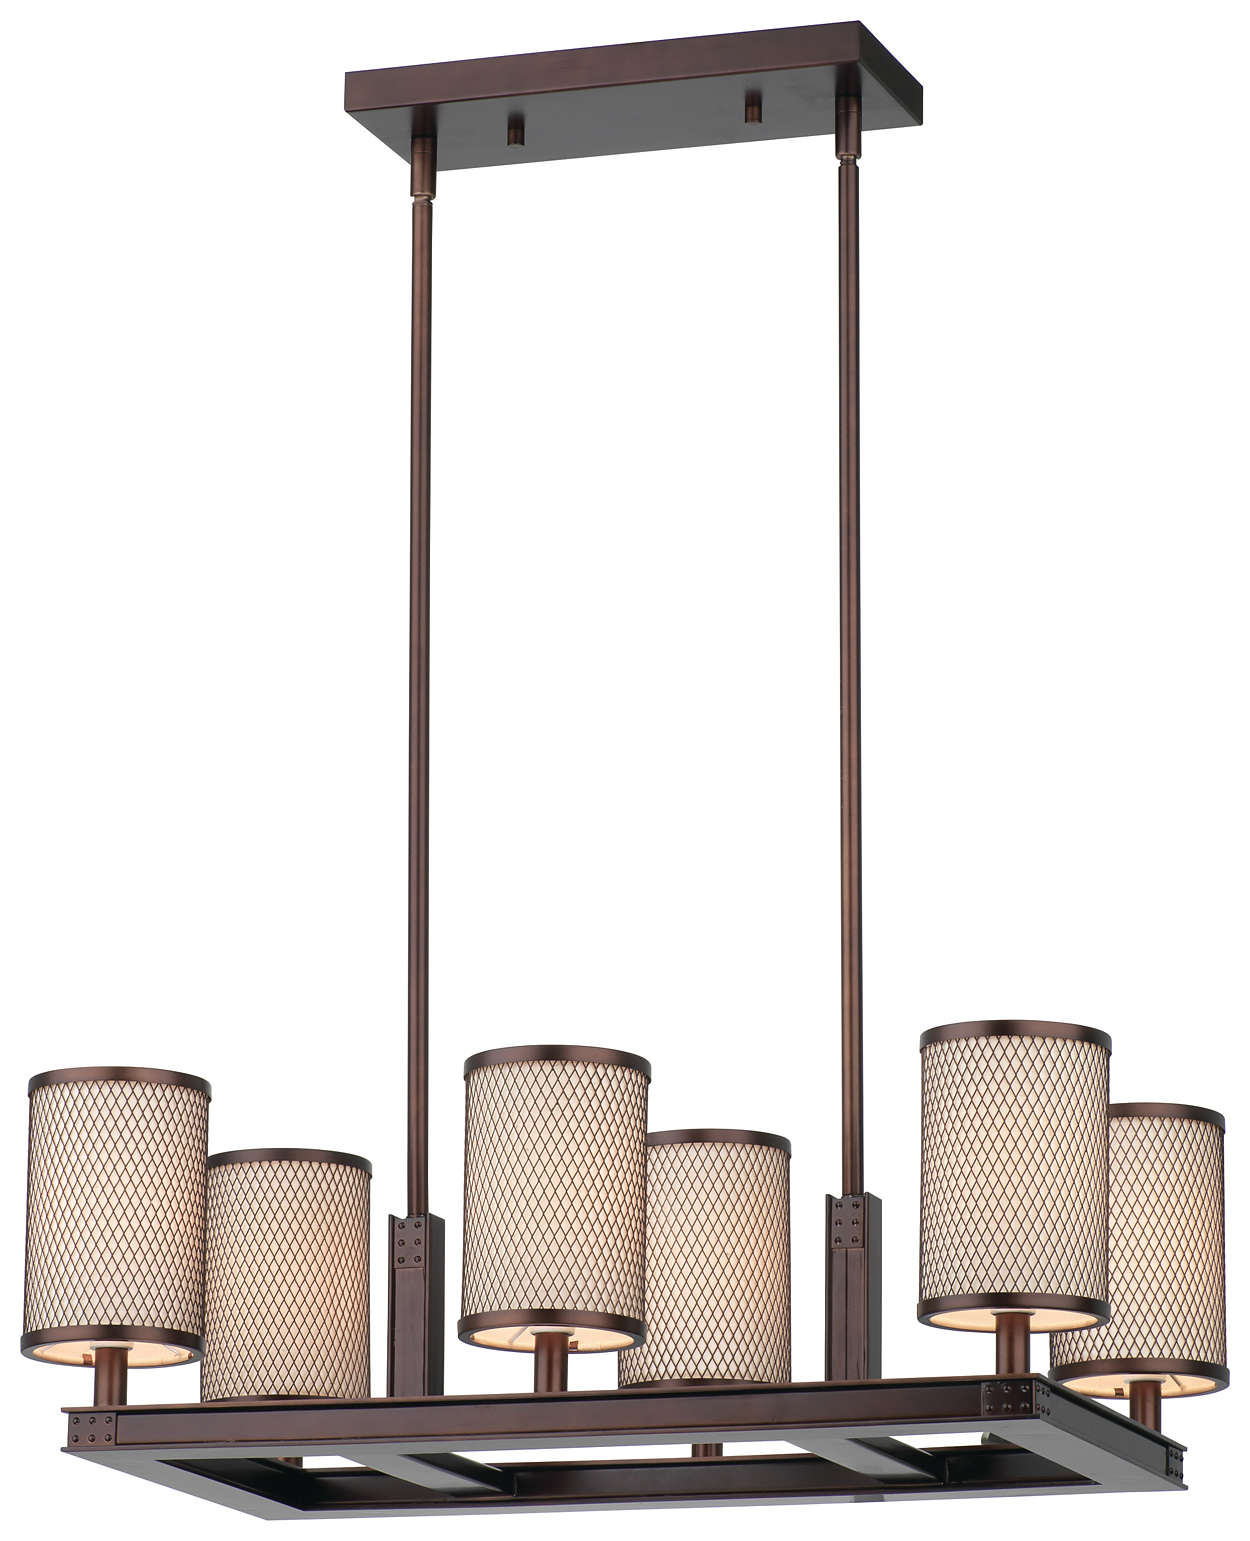 I Beam 6-light Chandelier in Merlot Bronze finish